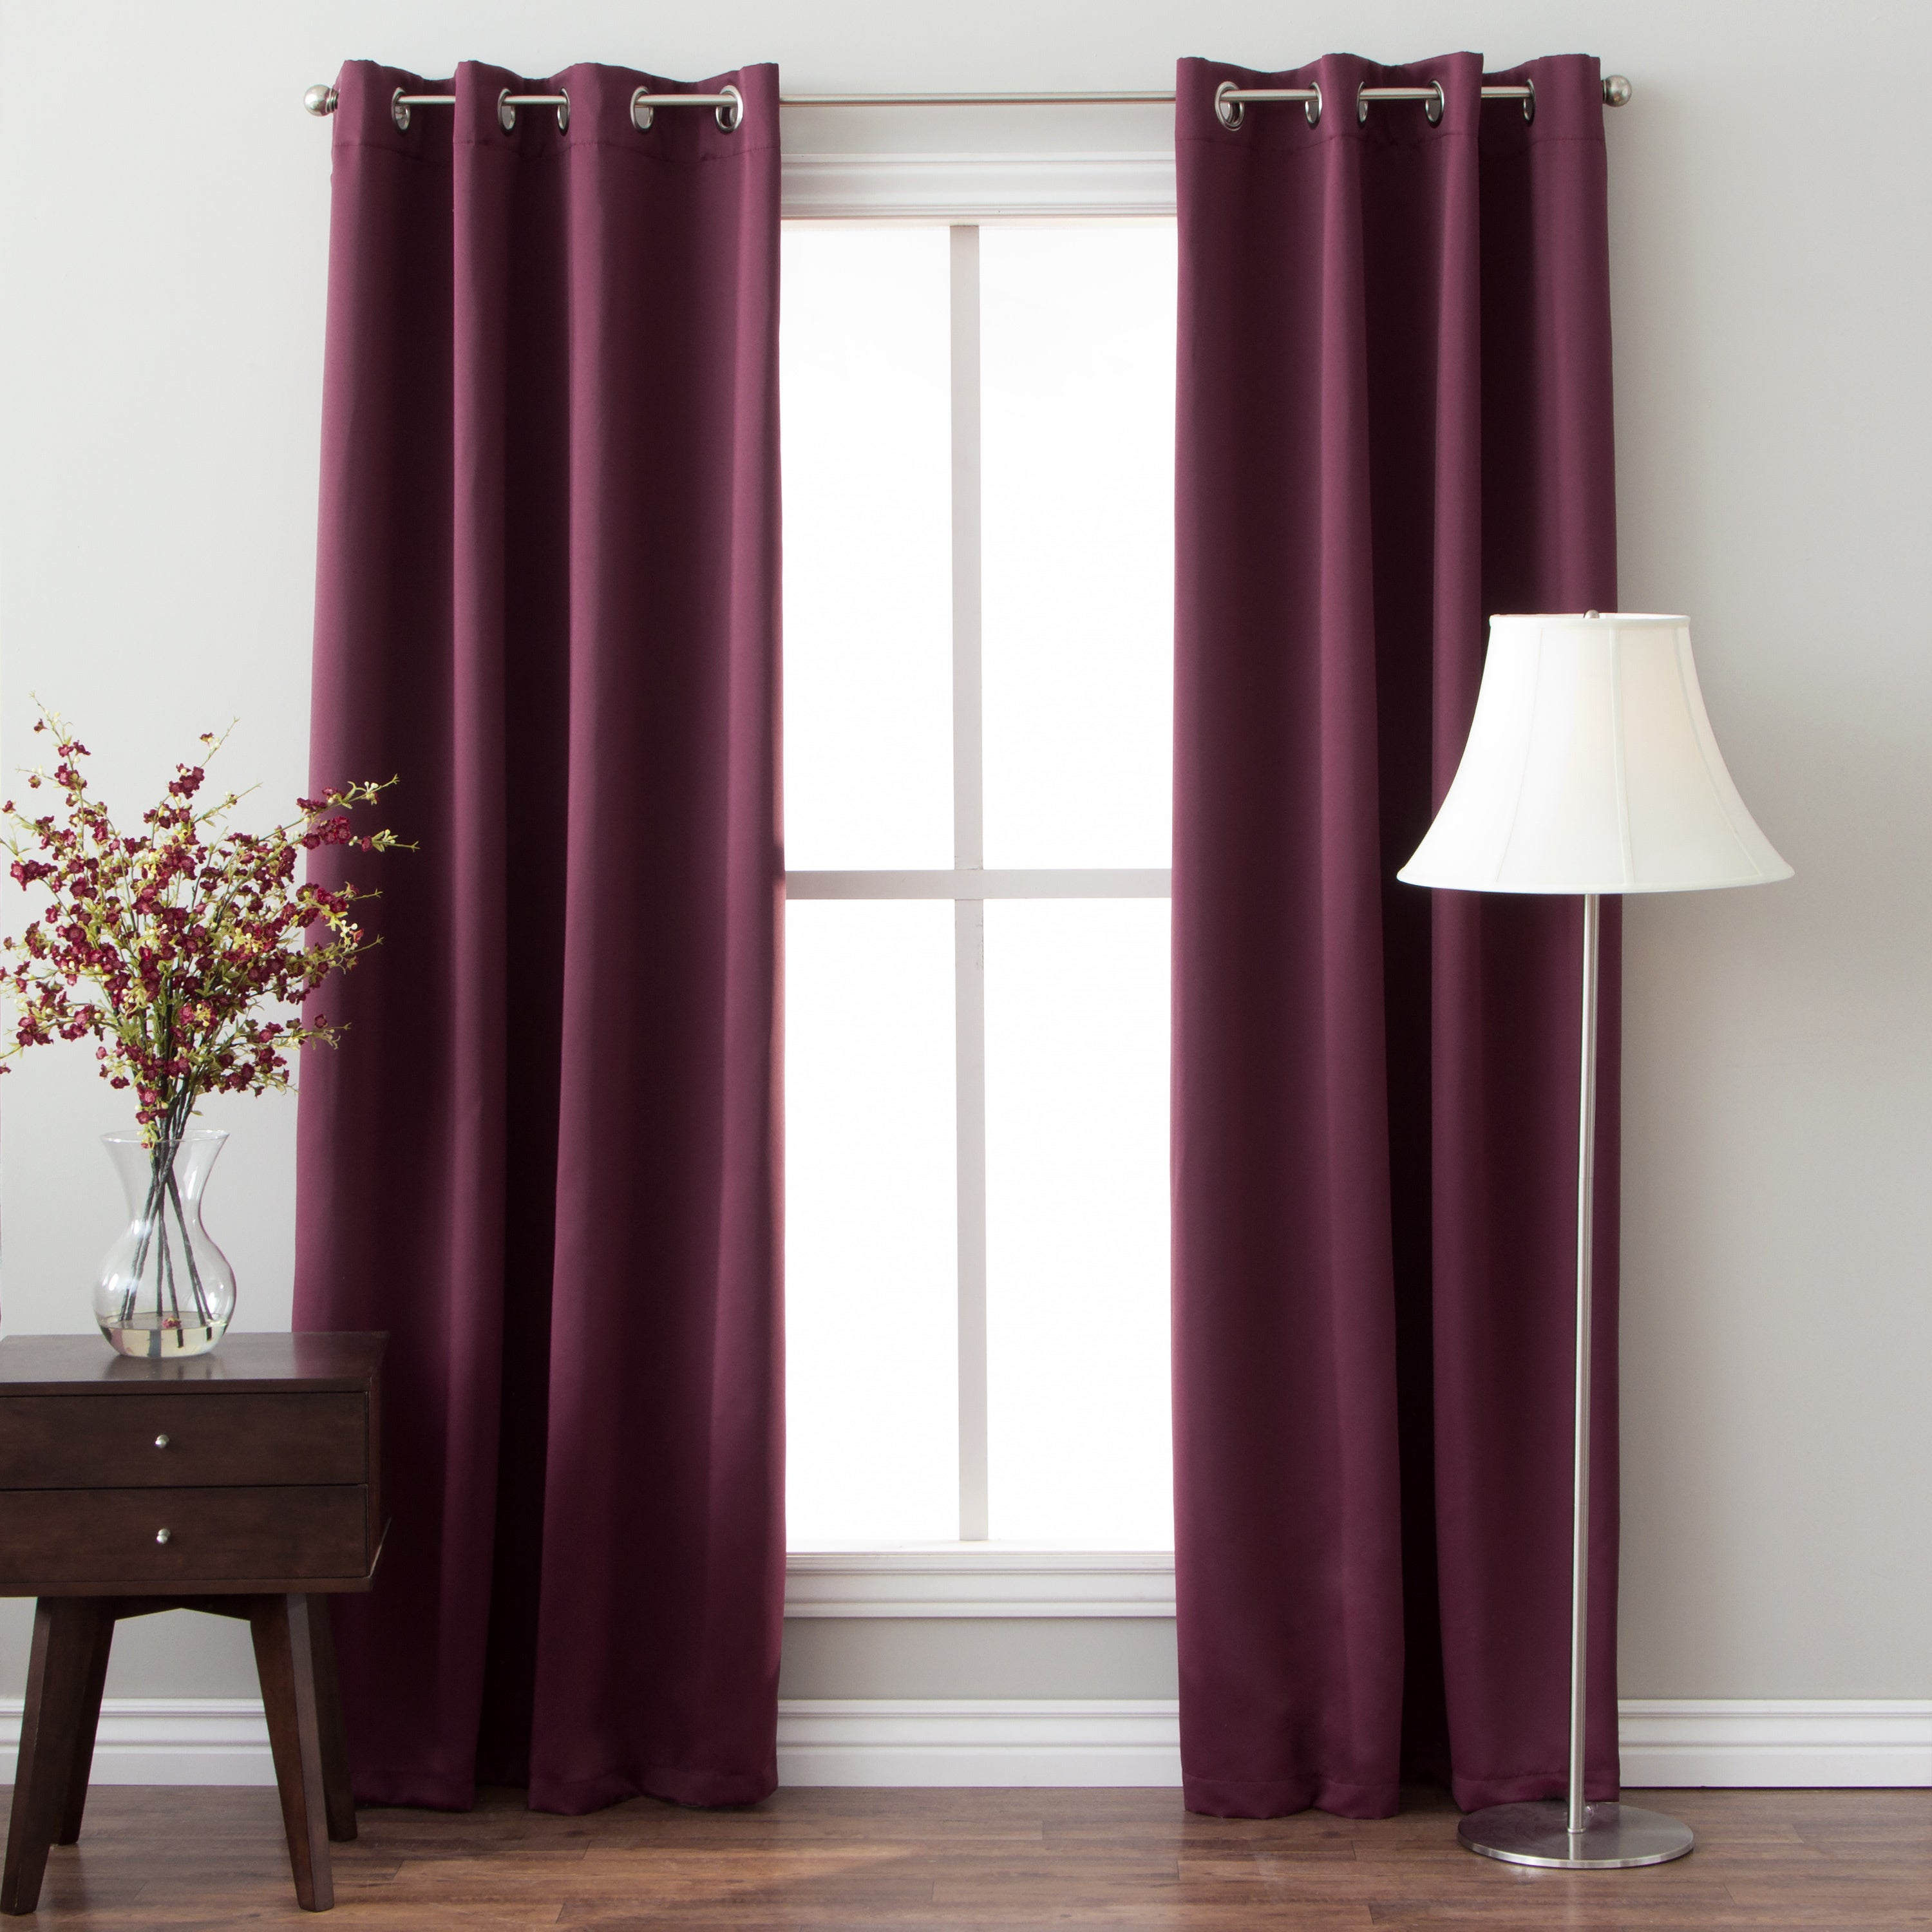 Thermal Curtains Overstock Shopping Stylish Drapes 64 Inch